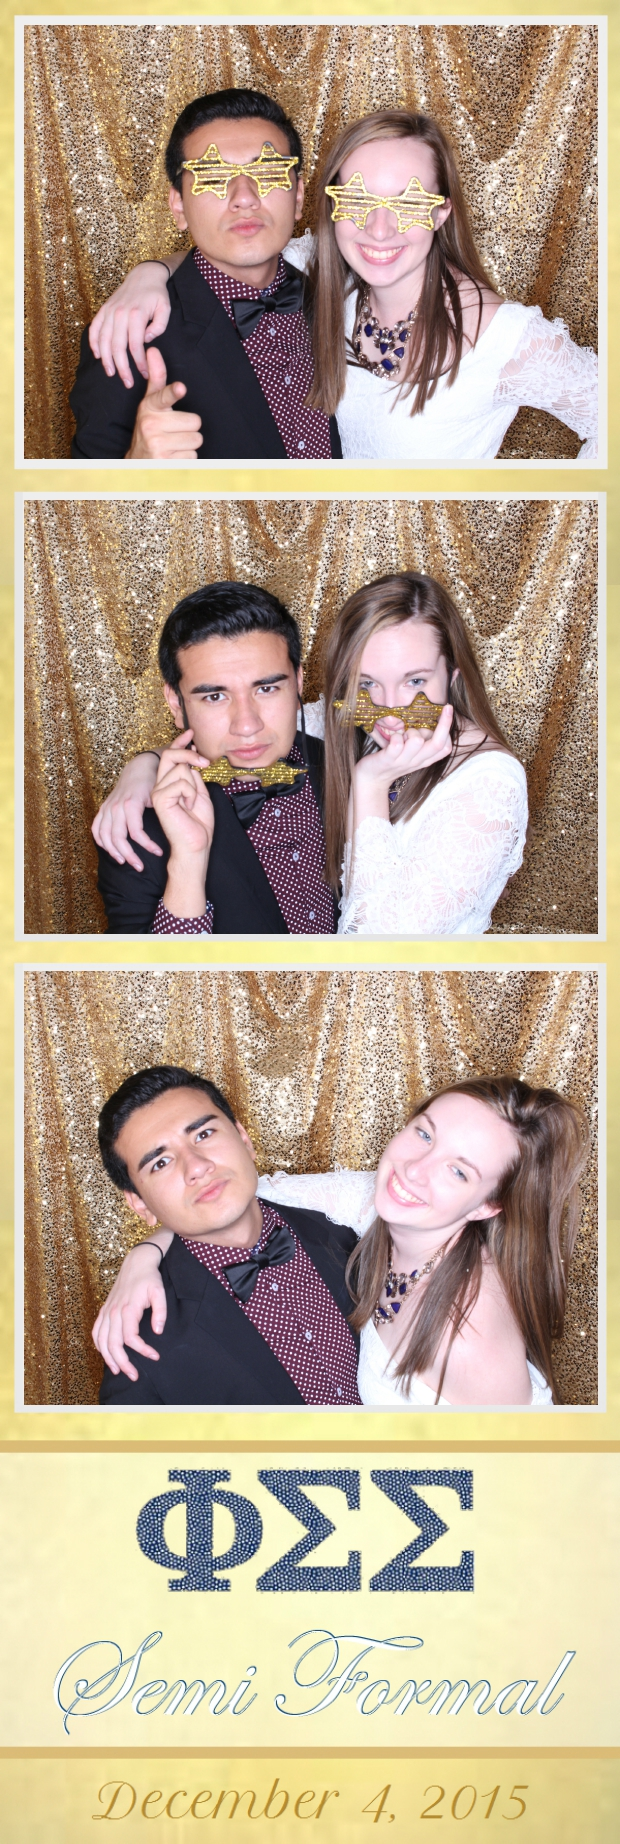 Guest House Events Photo Booth Phi Sigma Sigma Semi Formal (55).jpg